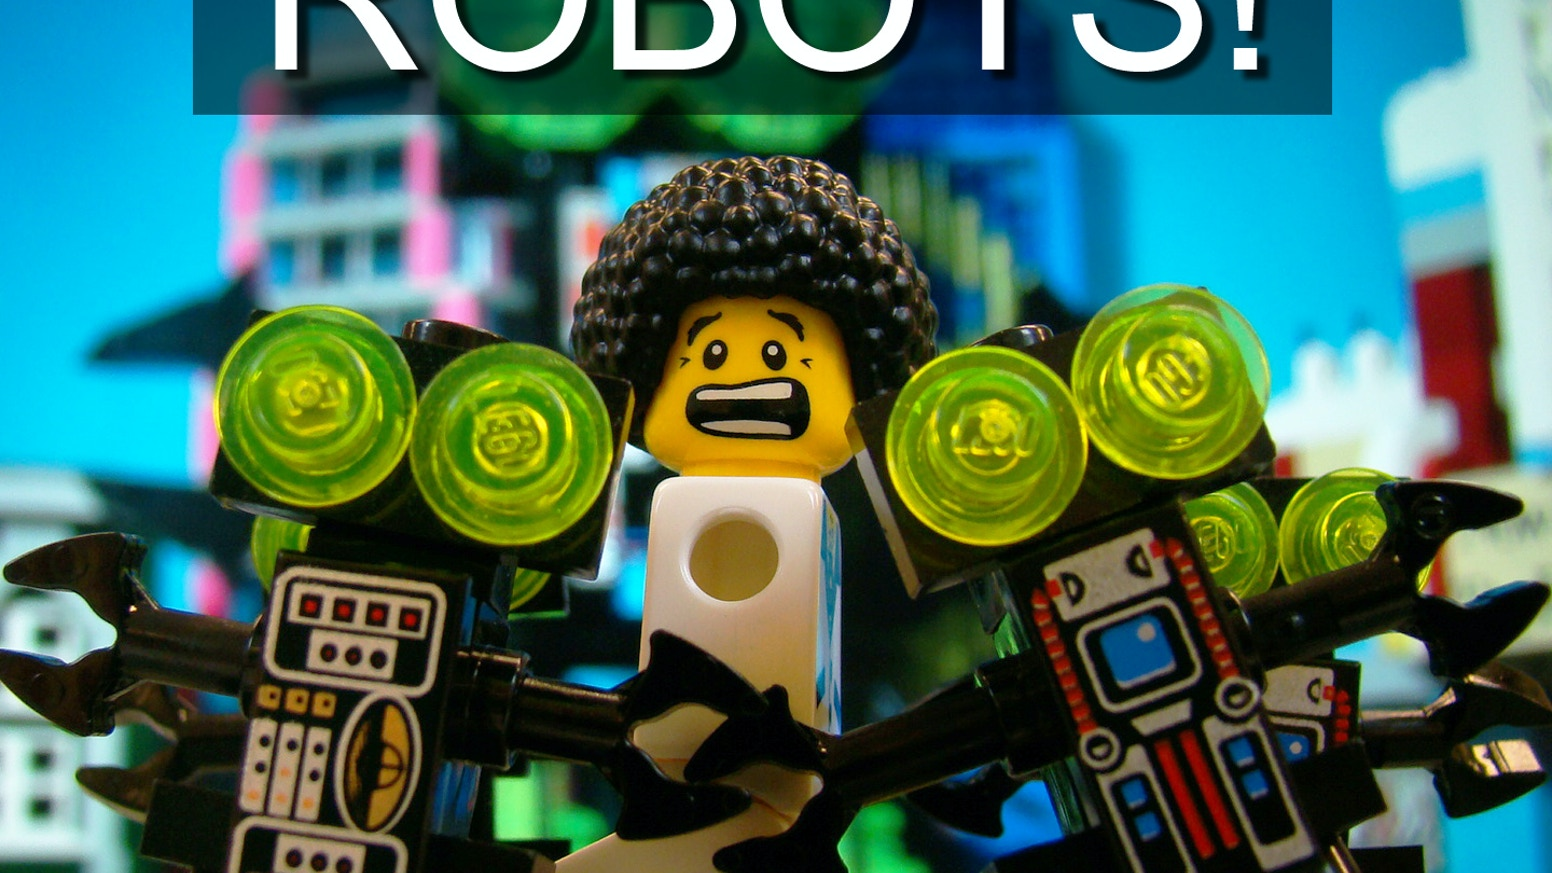 """Robots!"" is a stop motion animation made using LEGO bricks. You can watch it now on YouTube."